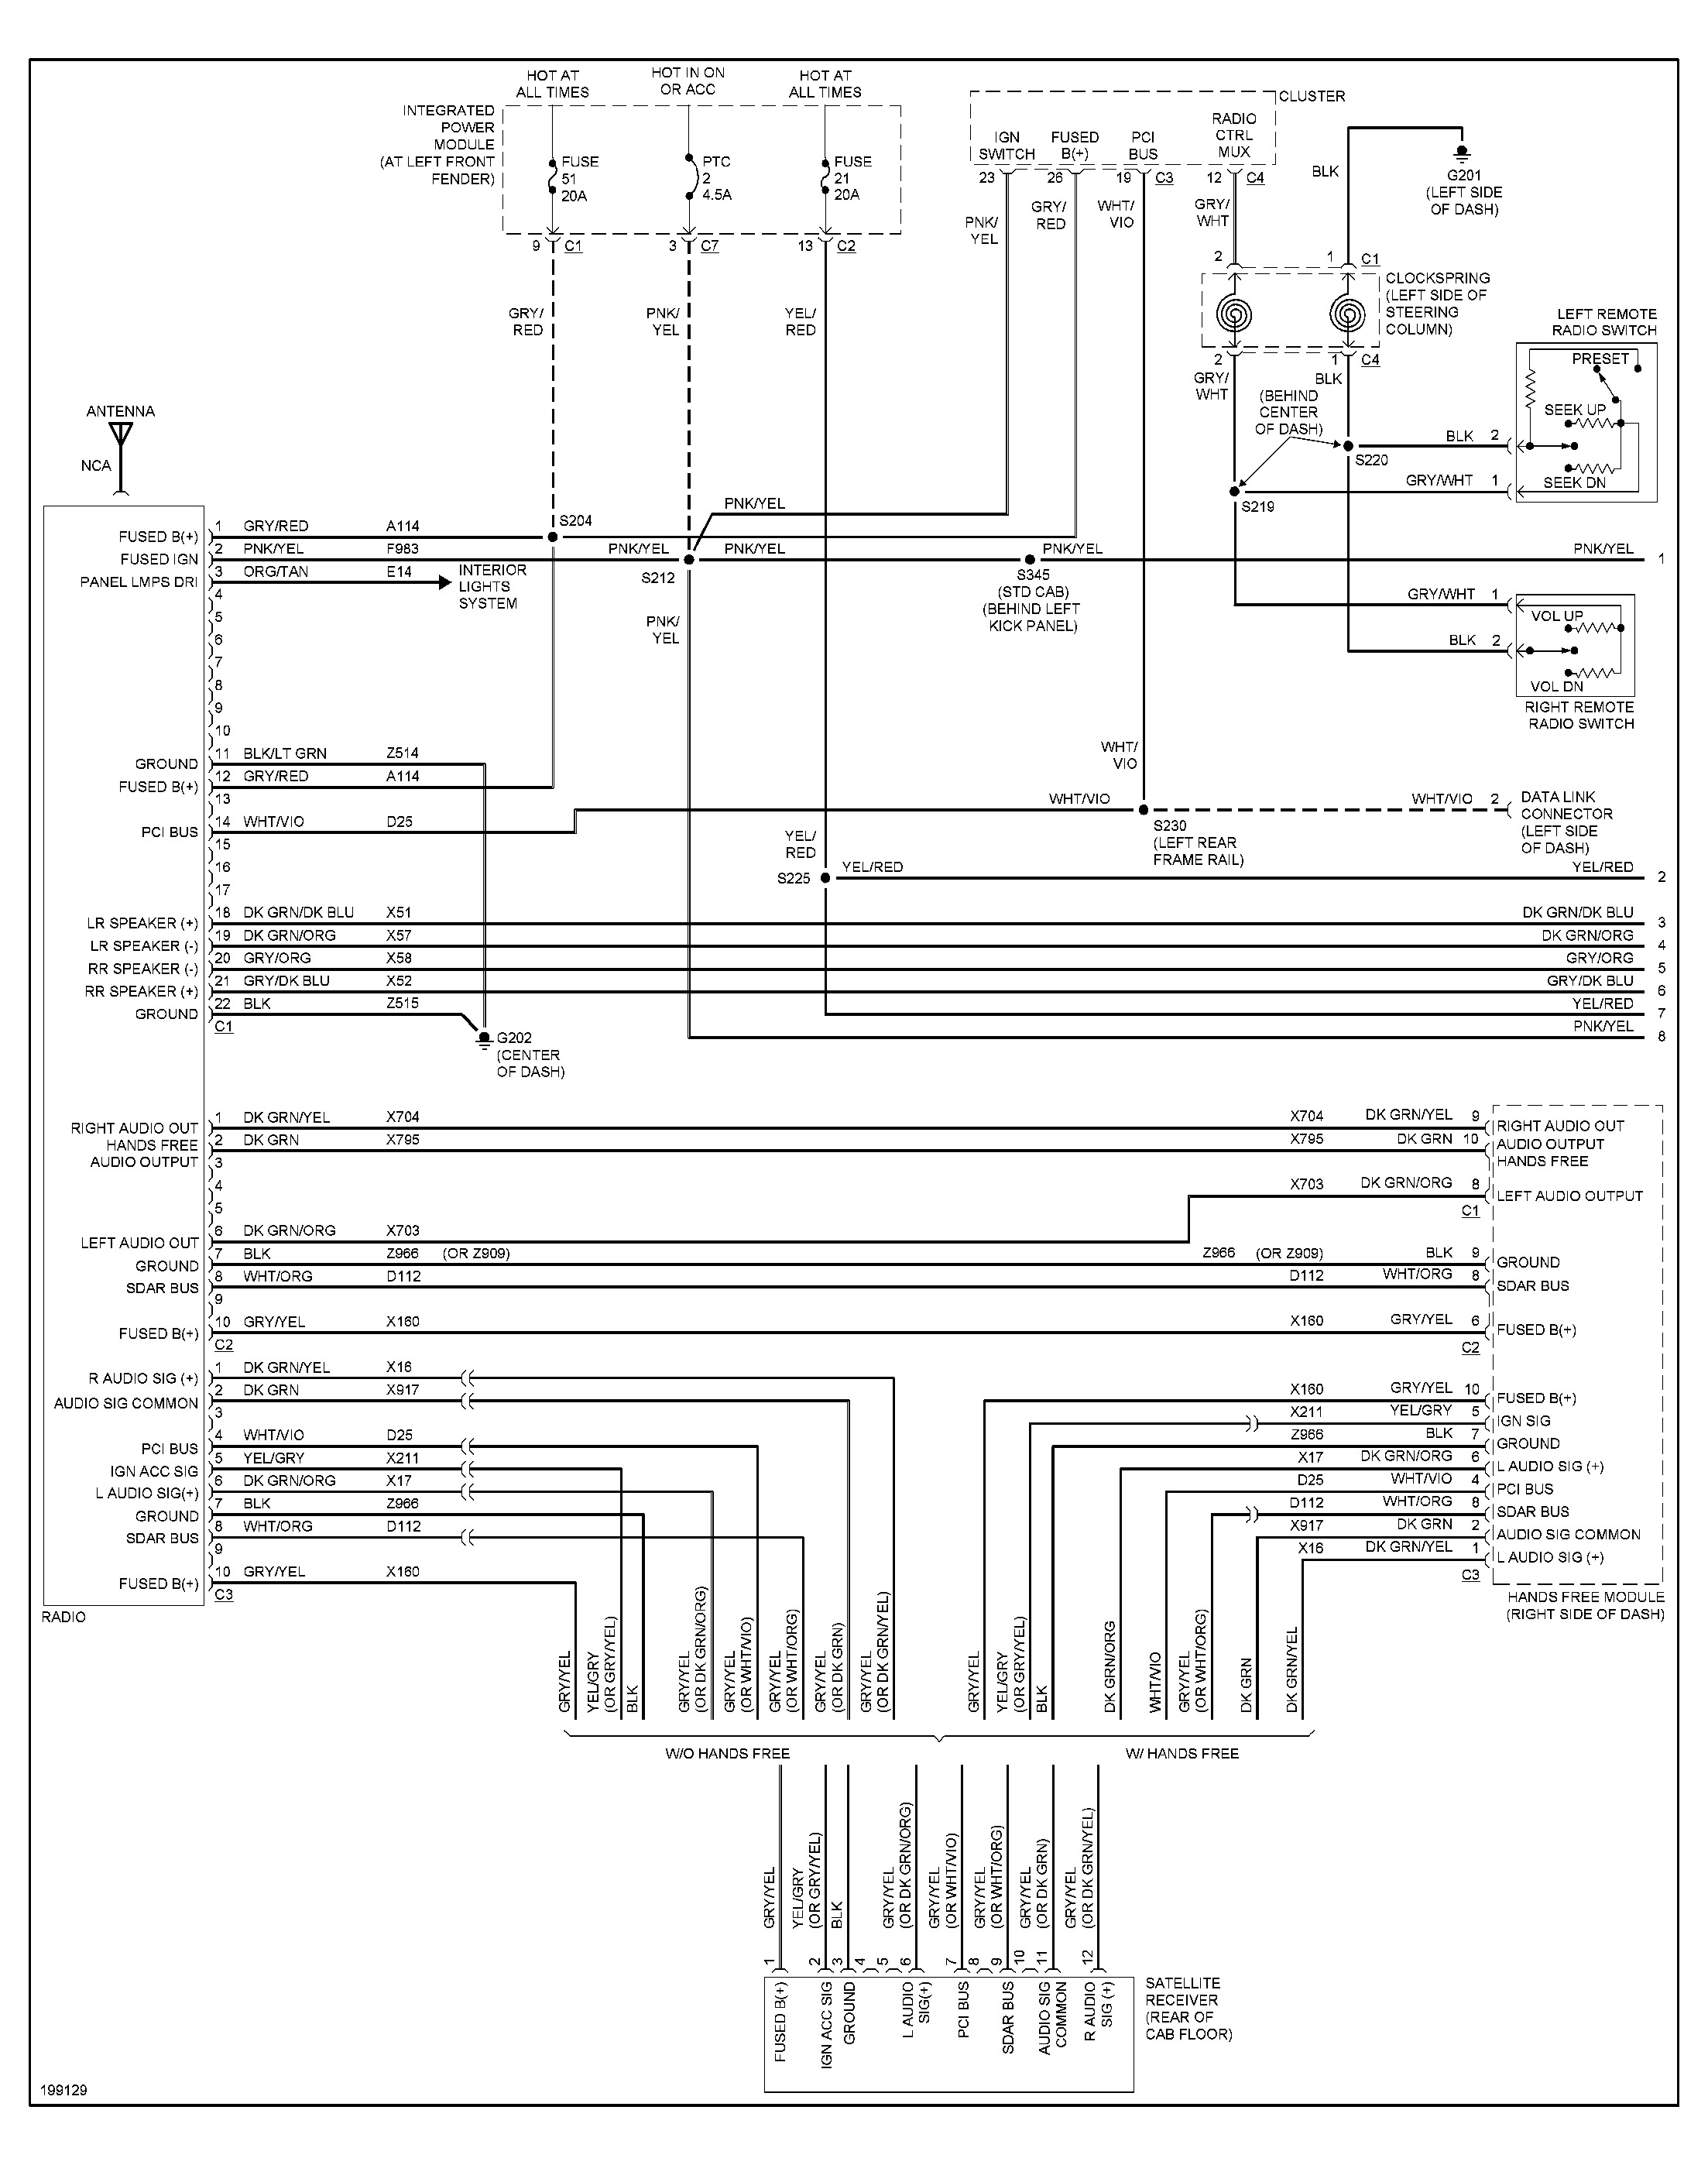 2004 DODGE CARAVAN ENGINE HOSE DIAGRAM - Auto Electrical ...